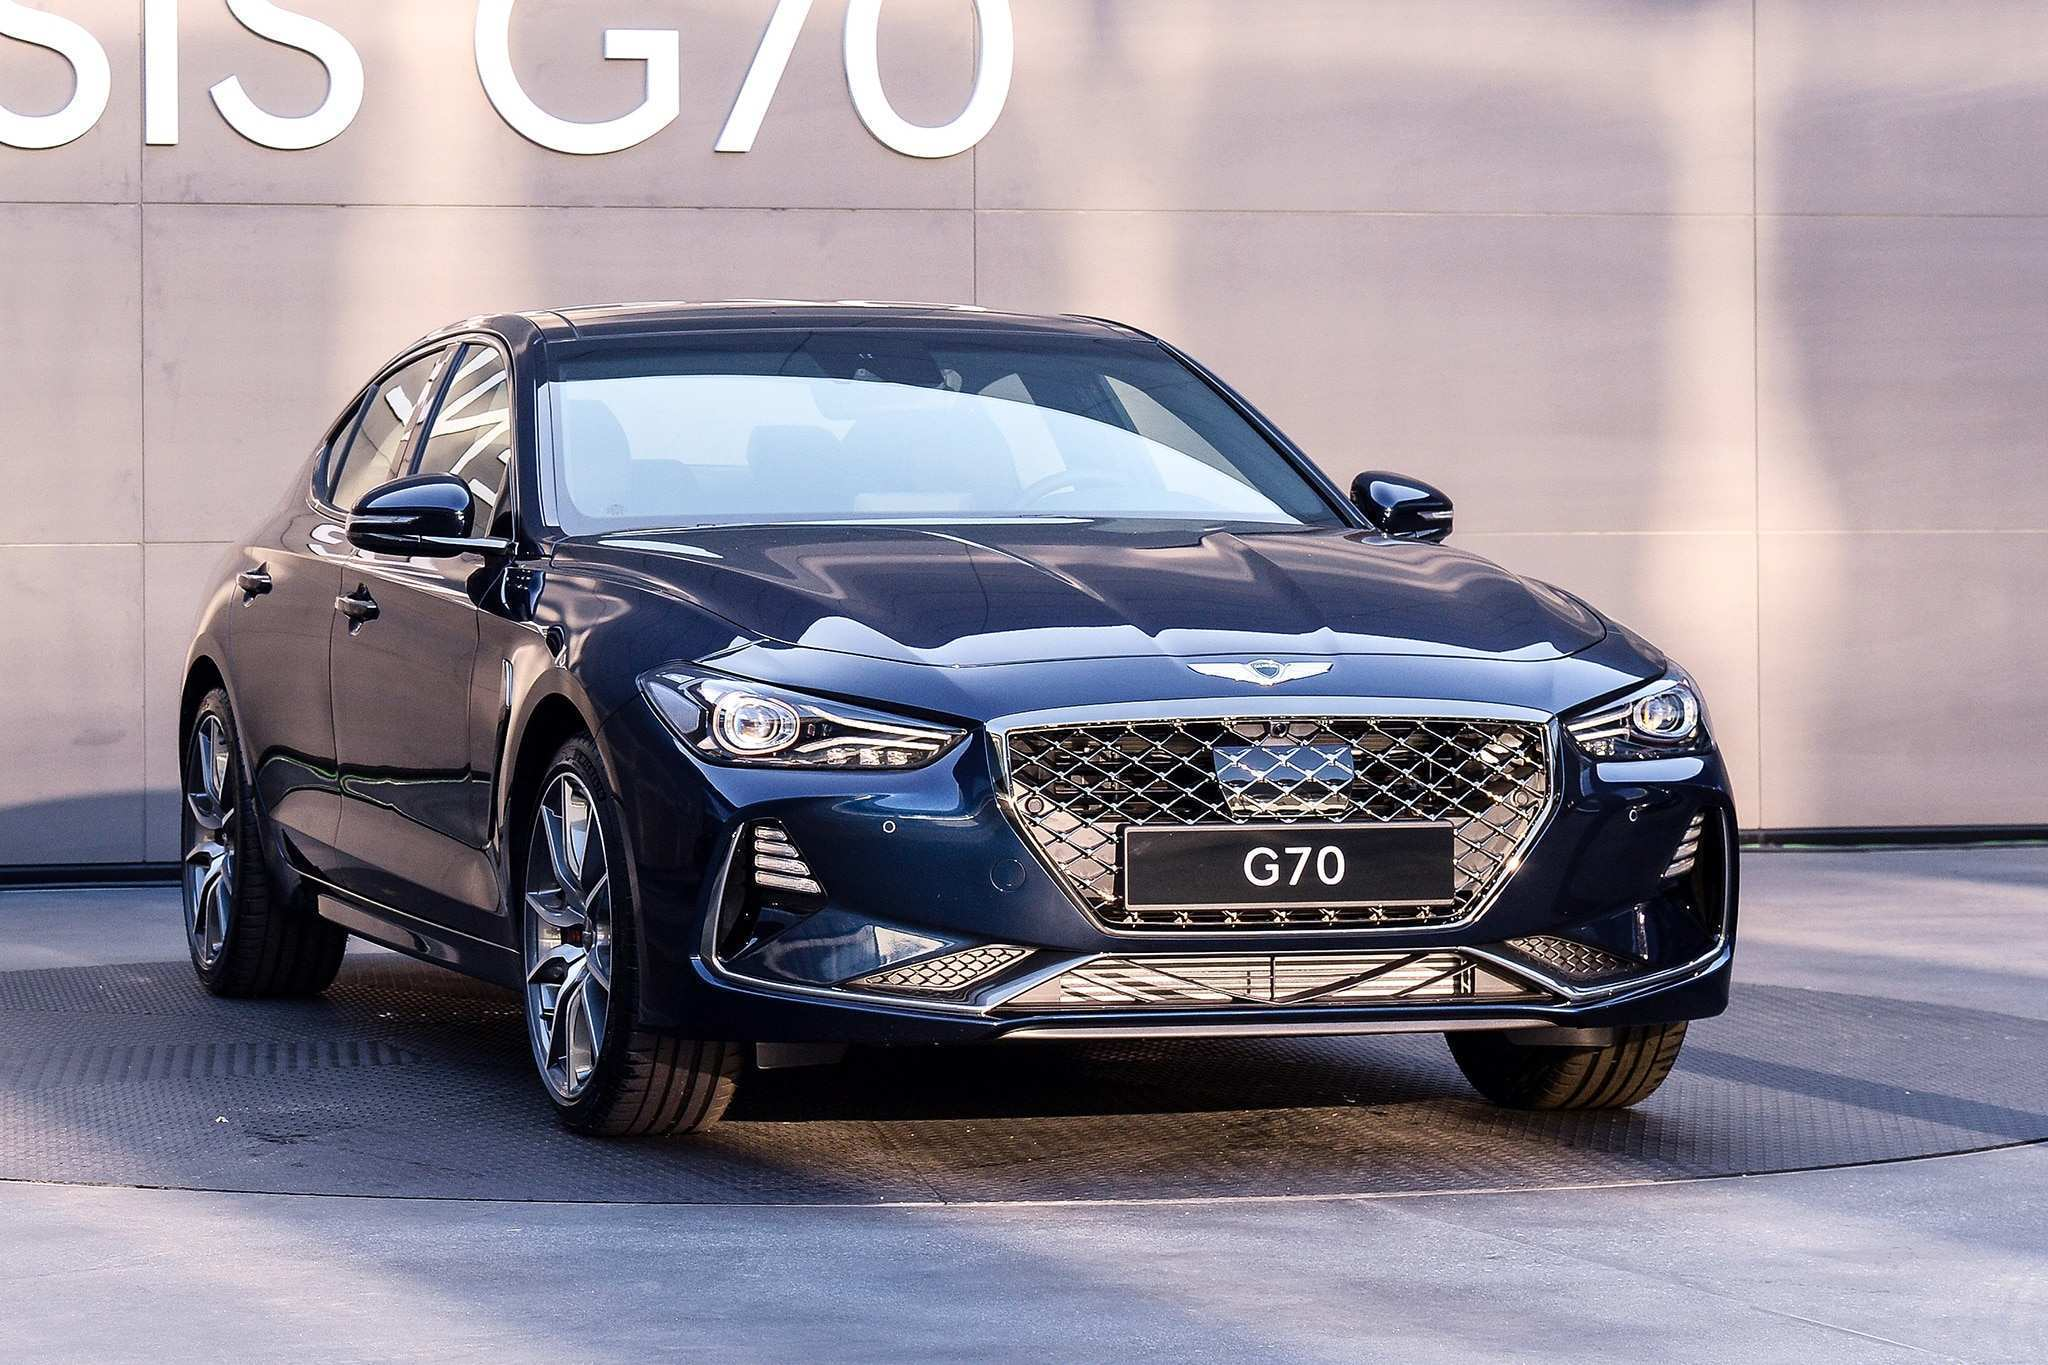 74 Gallery of 2019 Genesis G70 Specs Configurations for 2019 Genesis G70 Specs